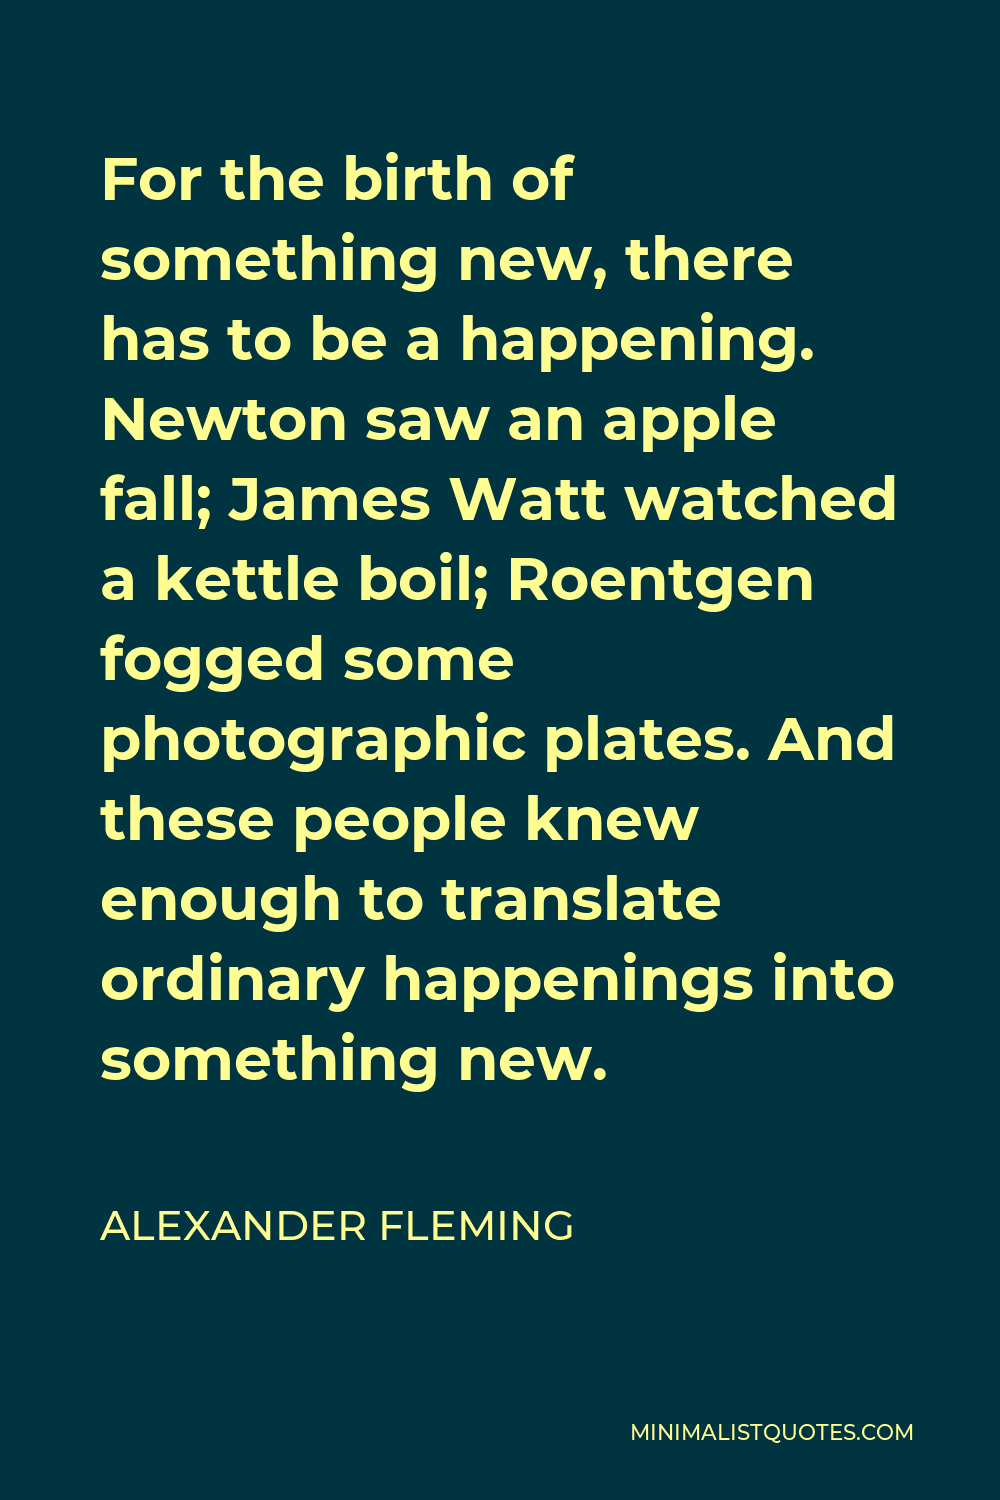 Alexander Fleming Quote - For the birth of something new, there has to be a happening. Newton saw an apple fall; James Watt watched a kettle boil; Roentgen fogged some photographic plates. And these people knew enough to translate ordinary happenings into something new.